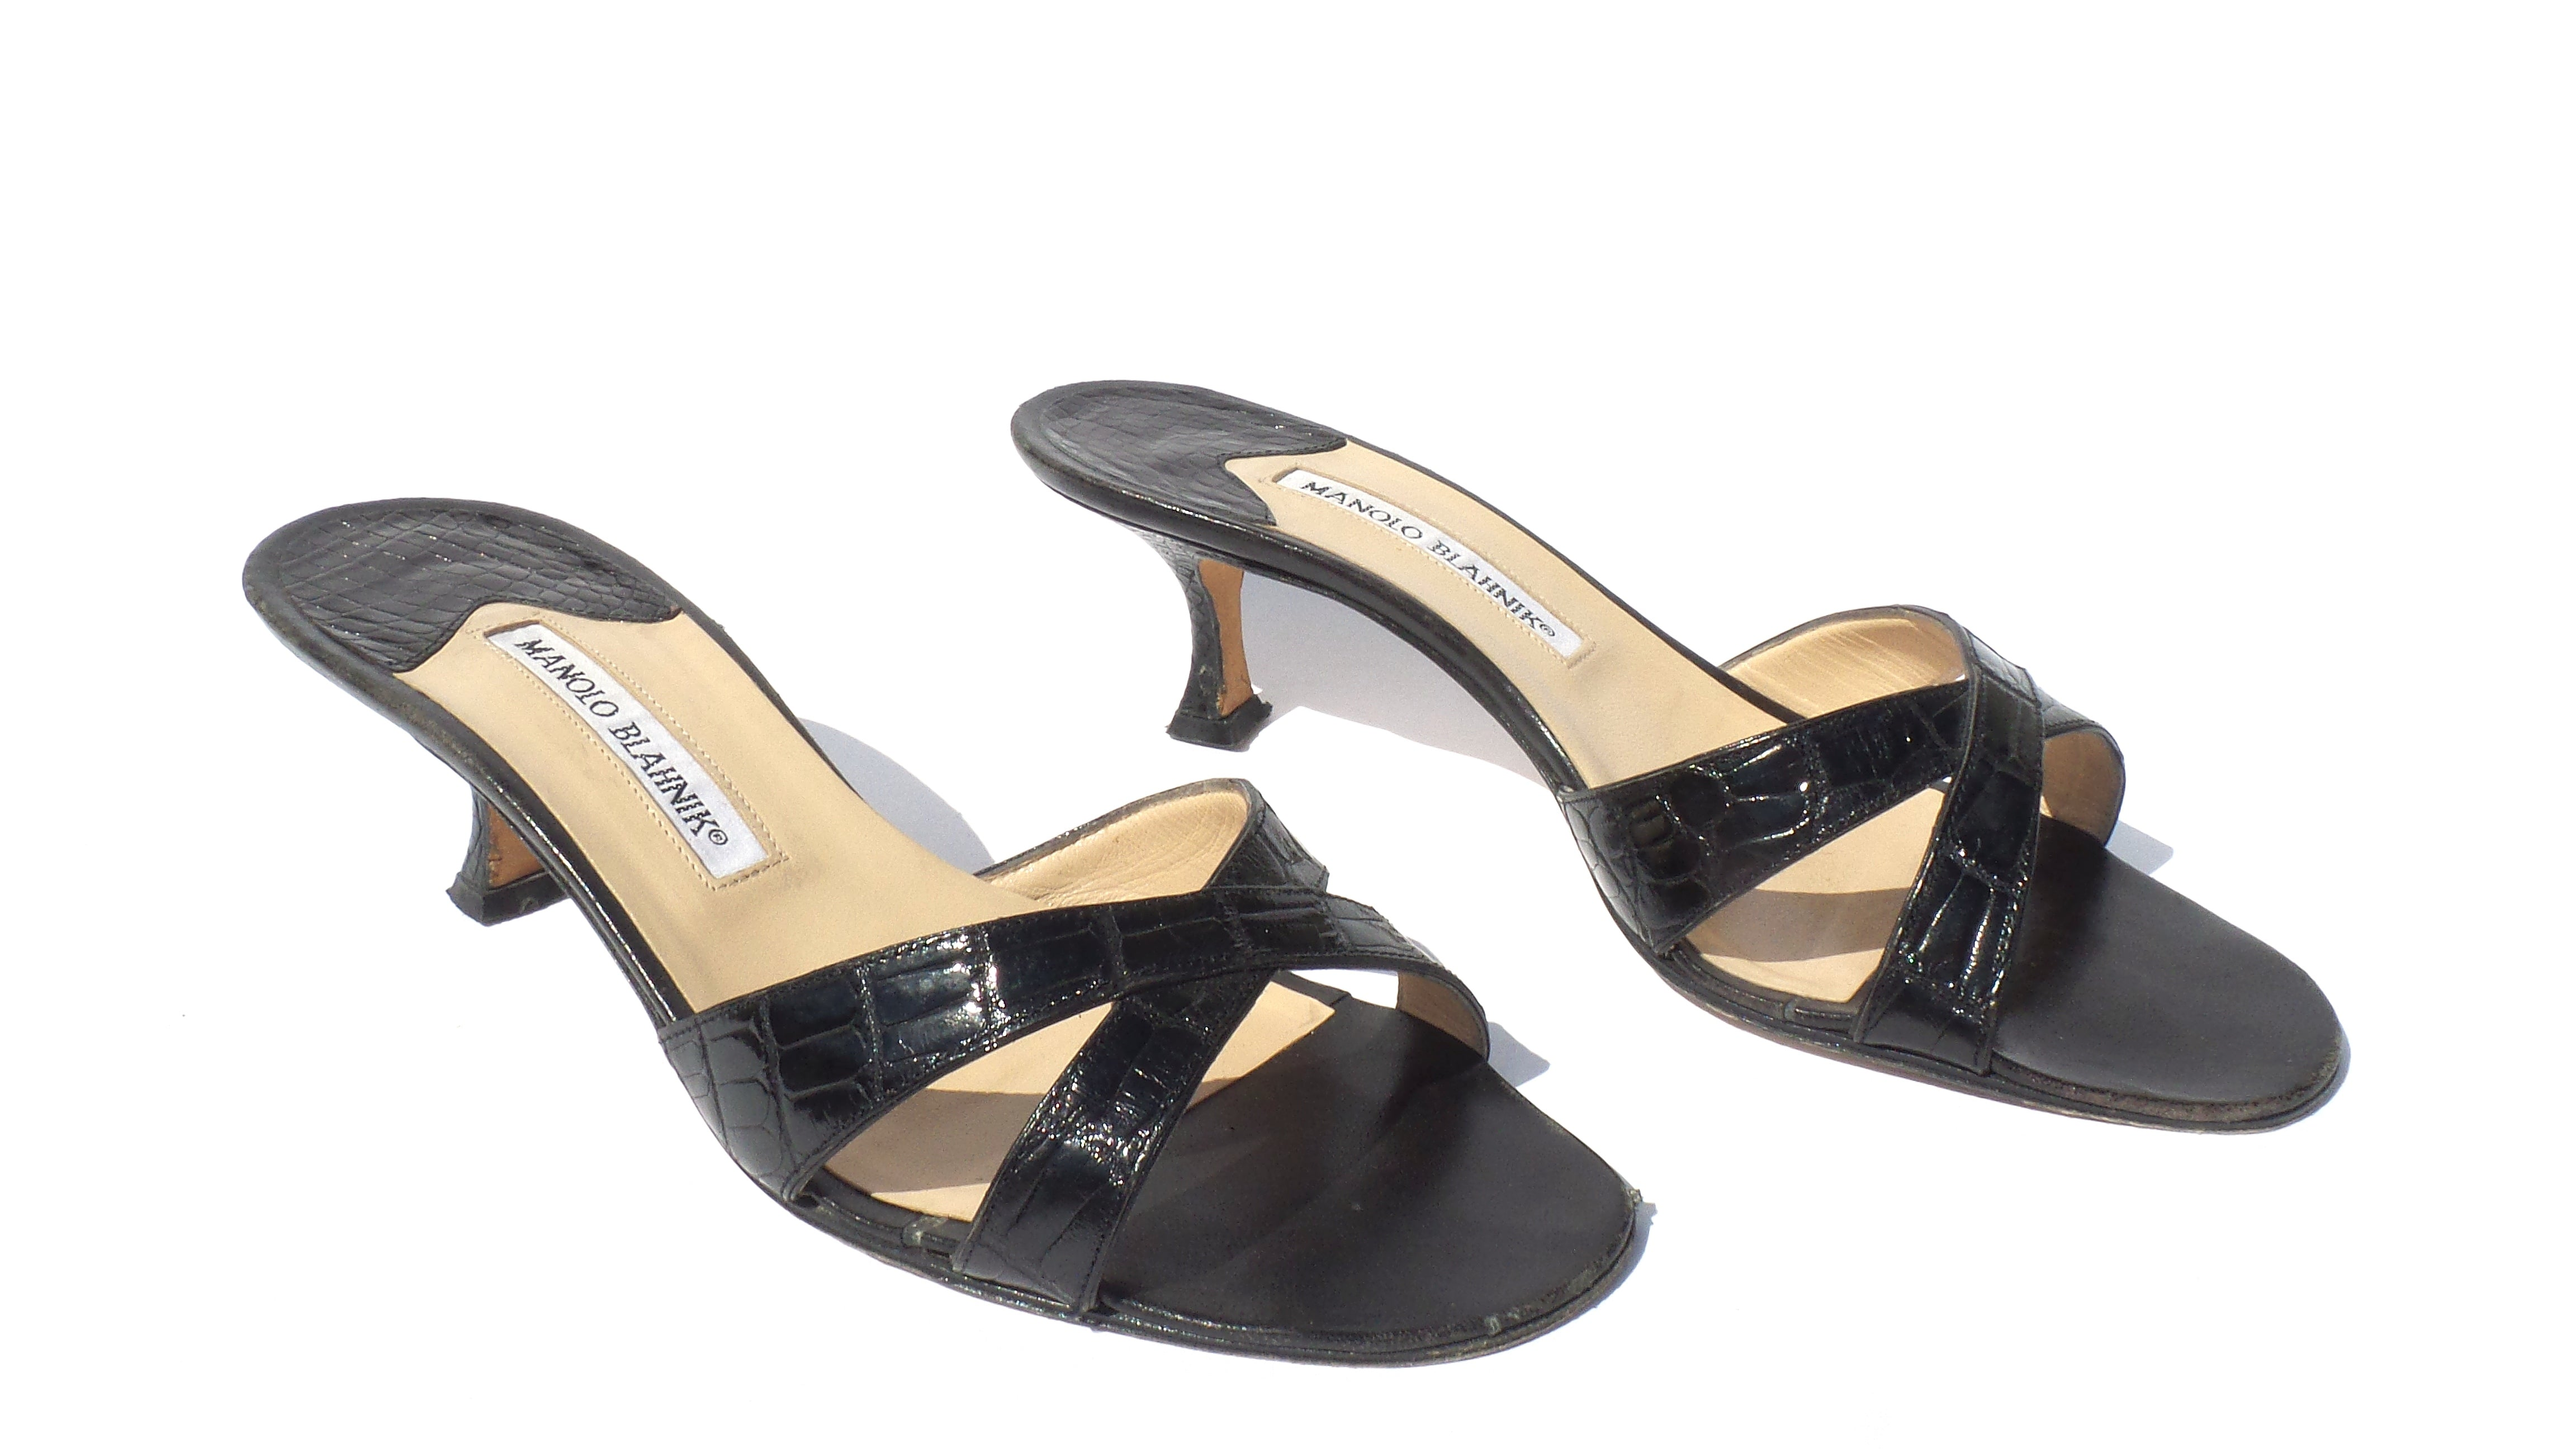 'Sold' MANOLO BLAHNIK Callamu Black Crocodile Alligator Crisscross Slide Sandals 38.5